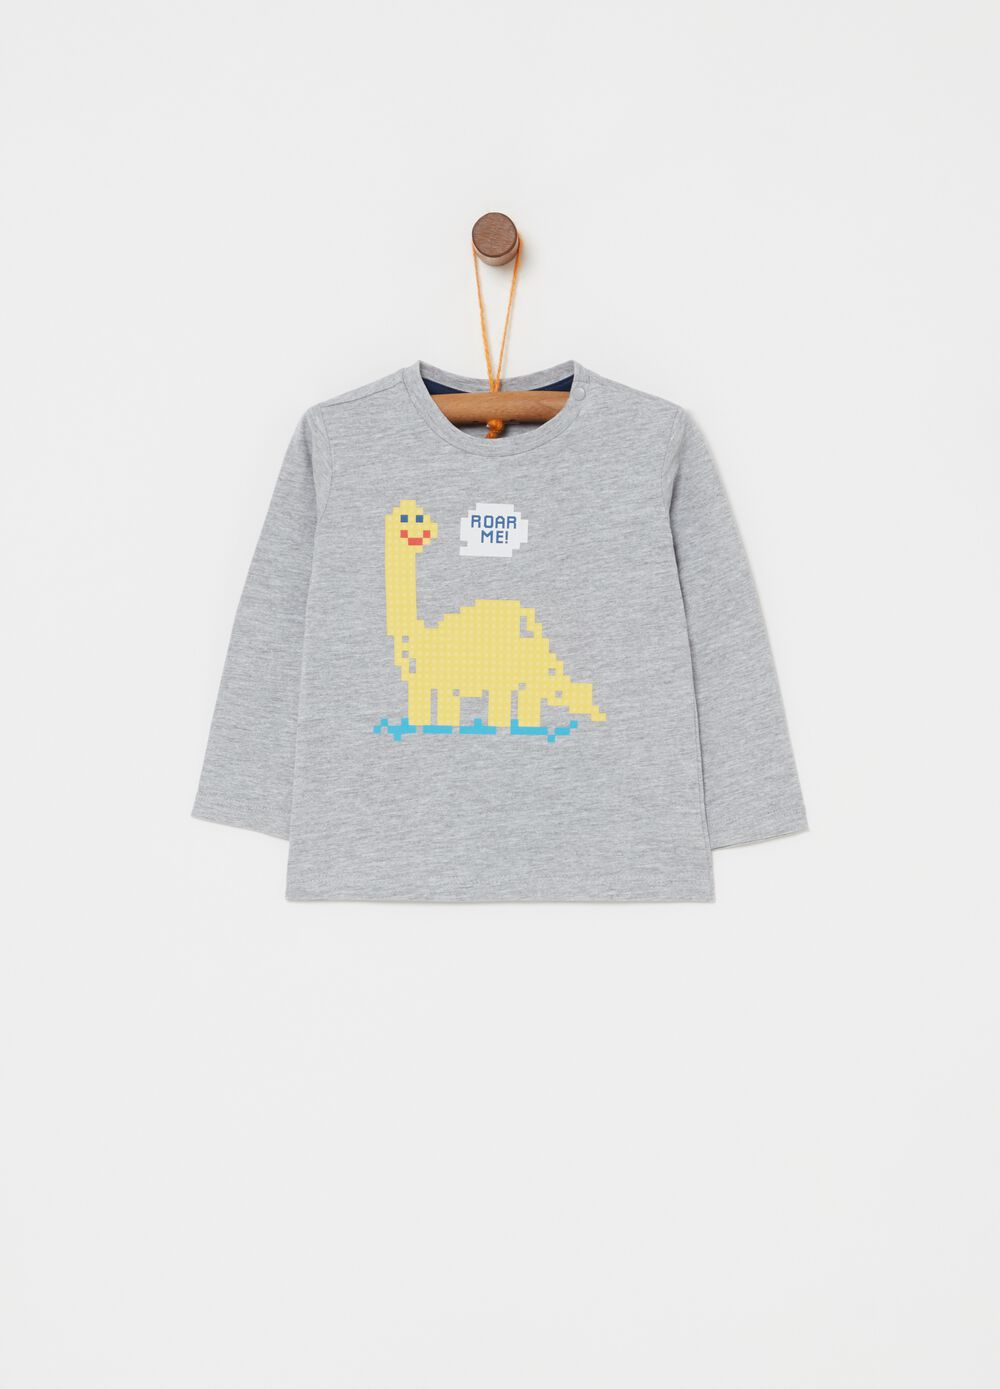 T-shirt with button and dinosaur print